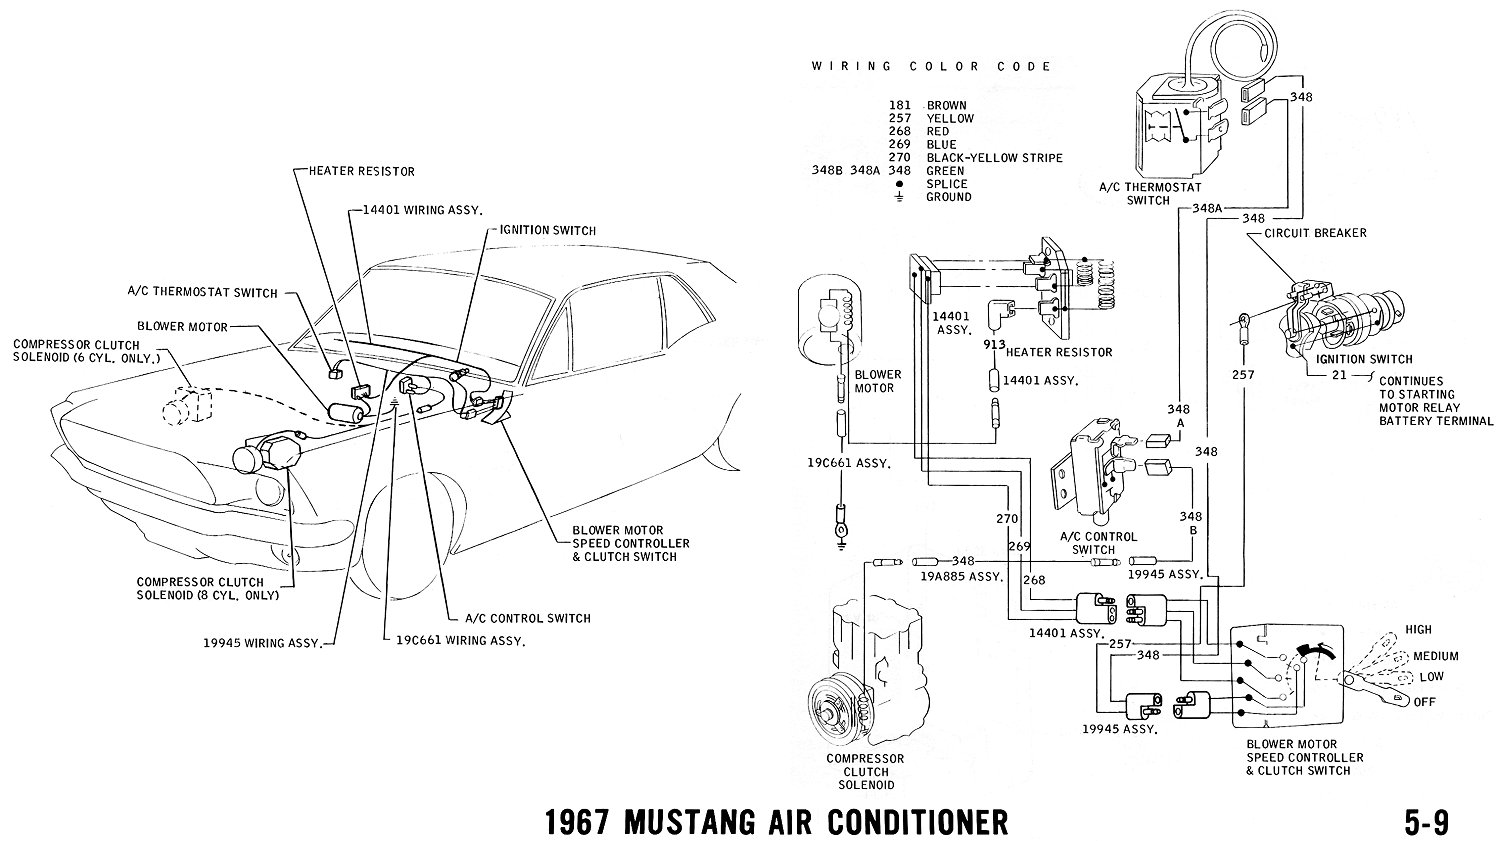 hight resolution of 1967 mustang wiring and vacuum diagrams average joe restoration 1967 mustang heater wiring diagram 1967 mustang